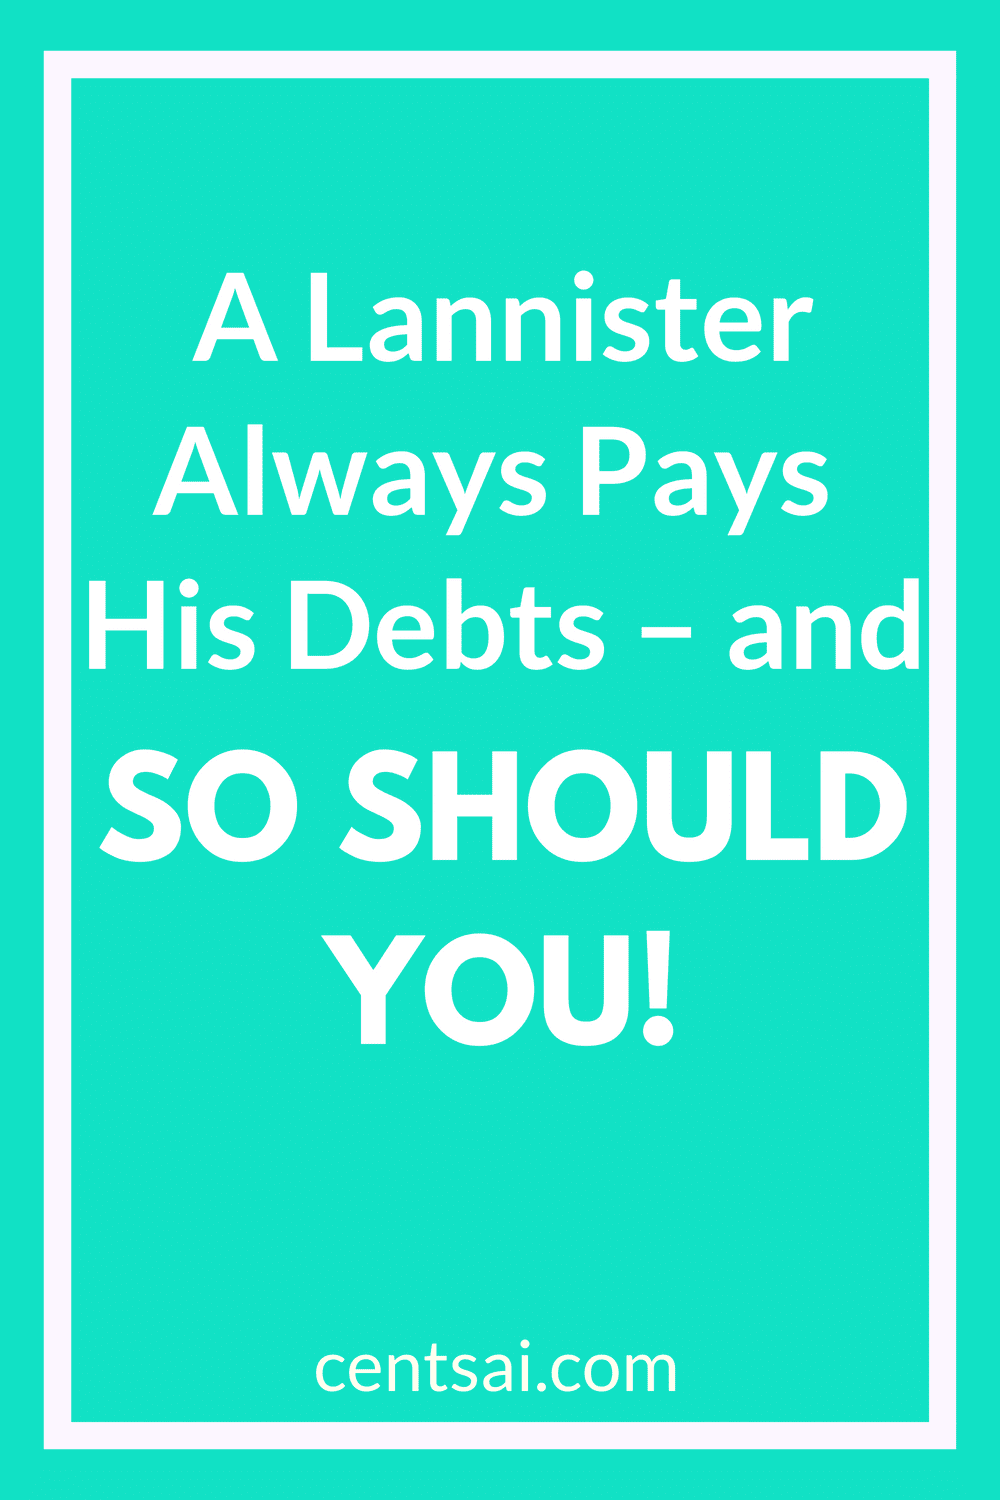 A Lannister Always Pays His Debts – and So Should You! You can achieve great financial success through plundering mines, making alliances, and going on joint ventures. Plus, if you're a Lannister, some good, old-fashioned murder helps, too. #financialindependence #debtpayment